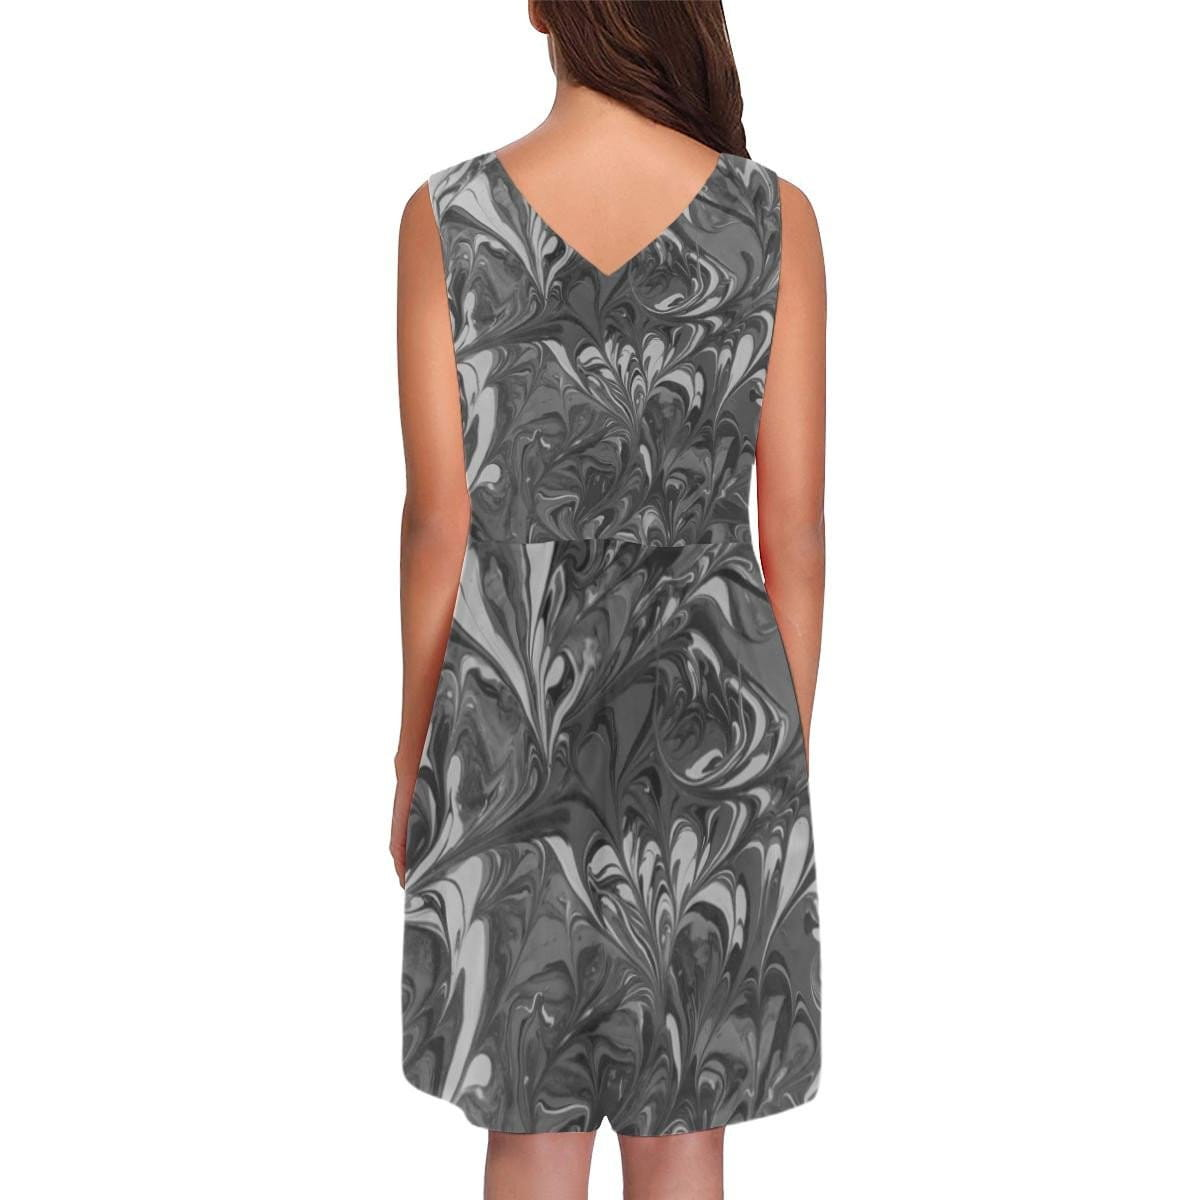 Fiercely Shades of Gray - Sleeveless Pleated Dress - Fiercely Fem